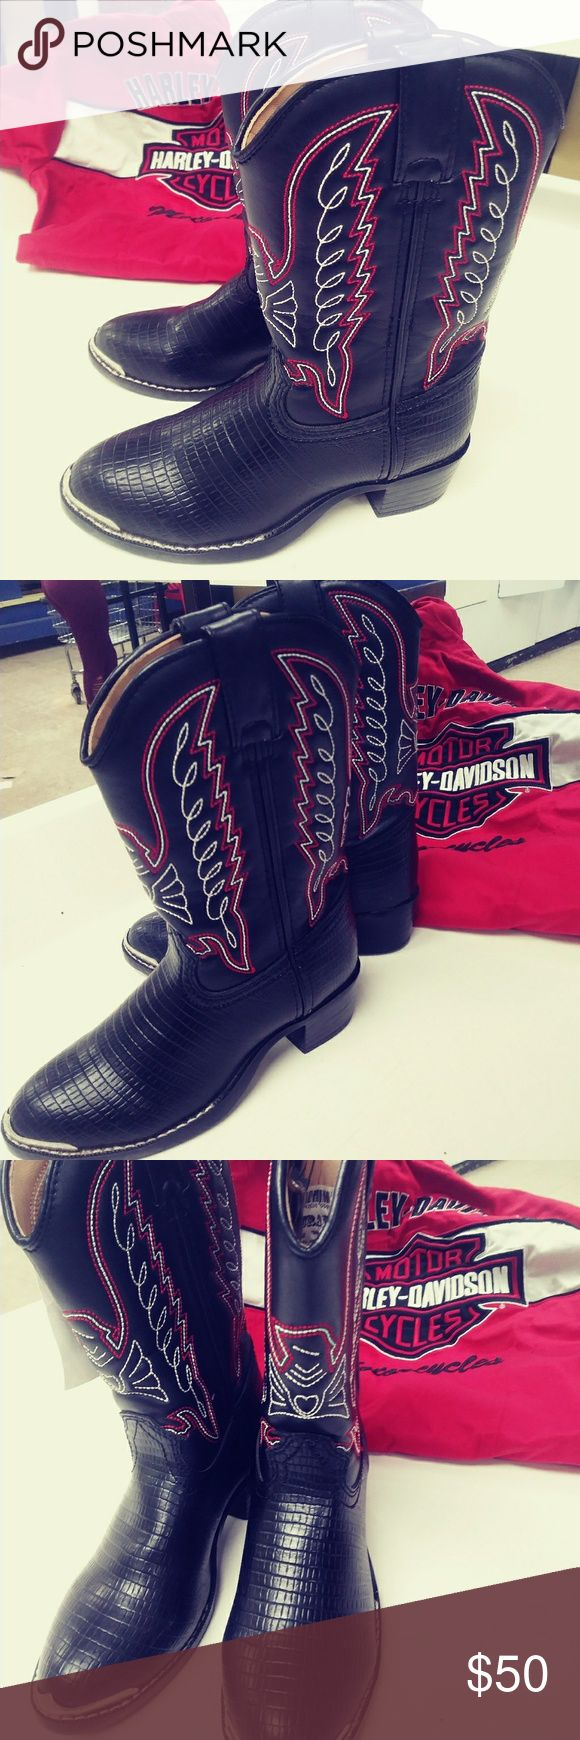 🆕New DURANGO kids cowboy/cowgirl boots New boots  Black with red and white stitching Durango Shoes Boots